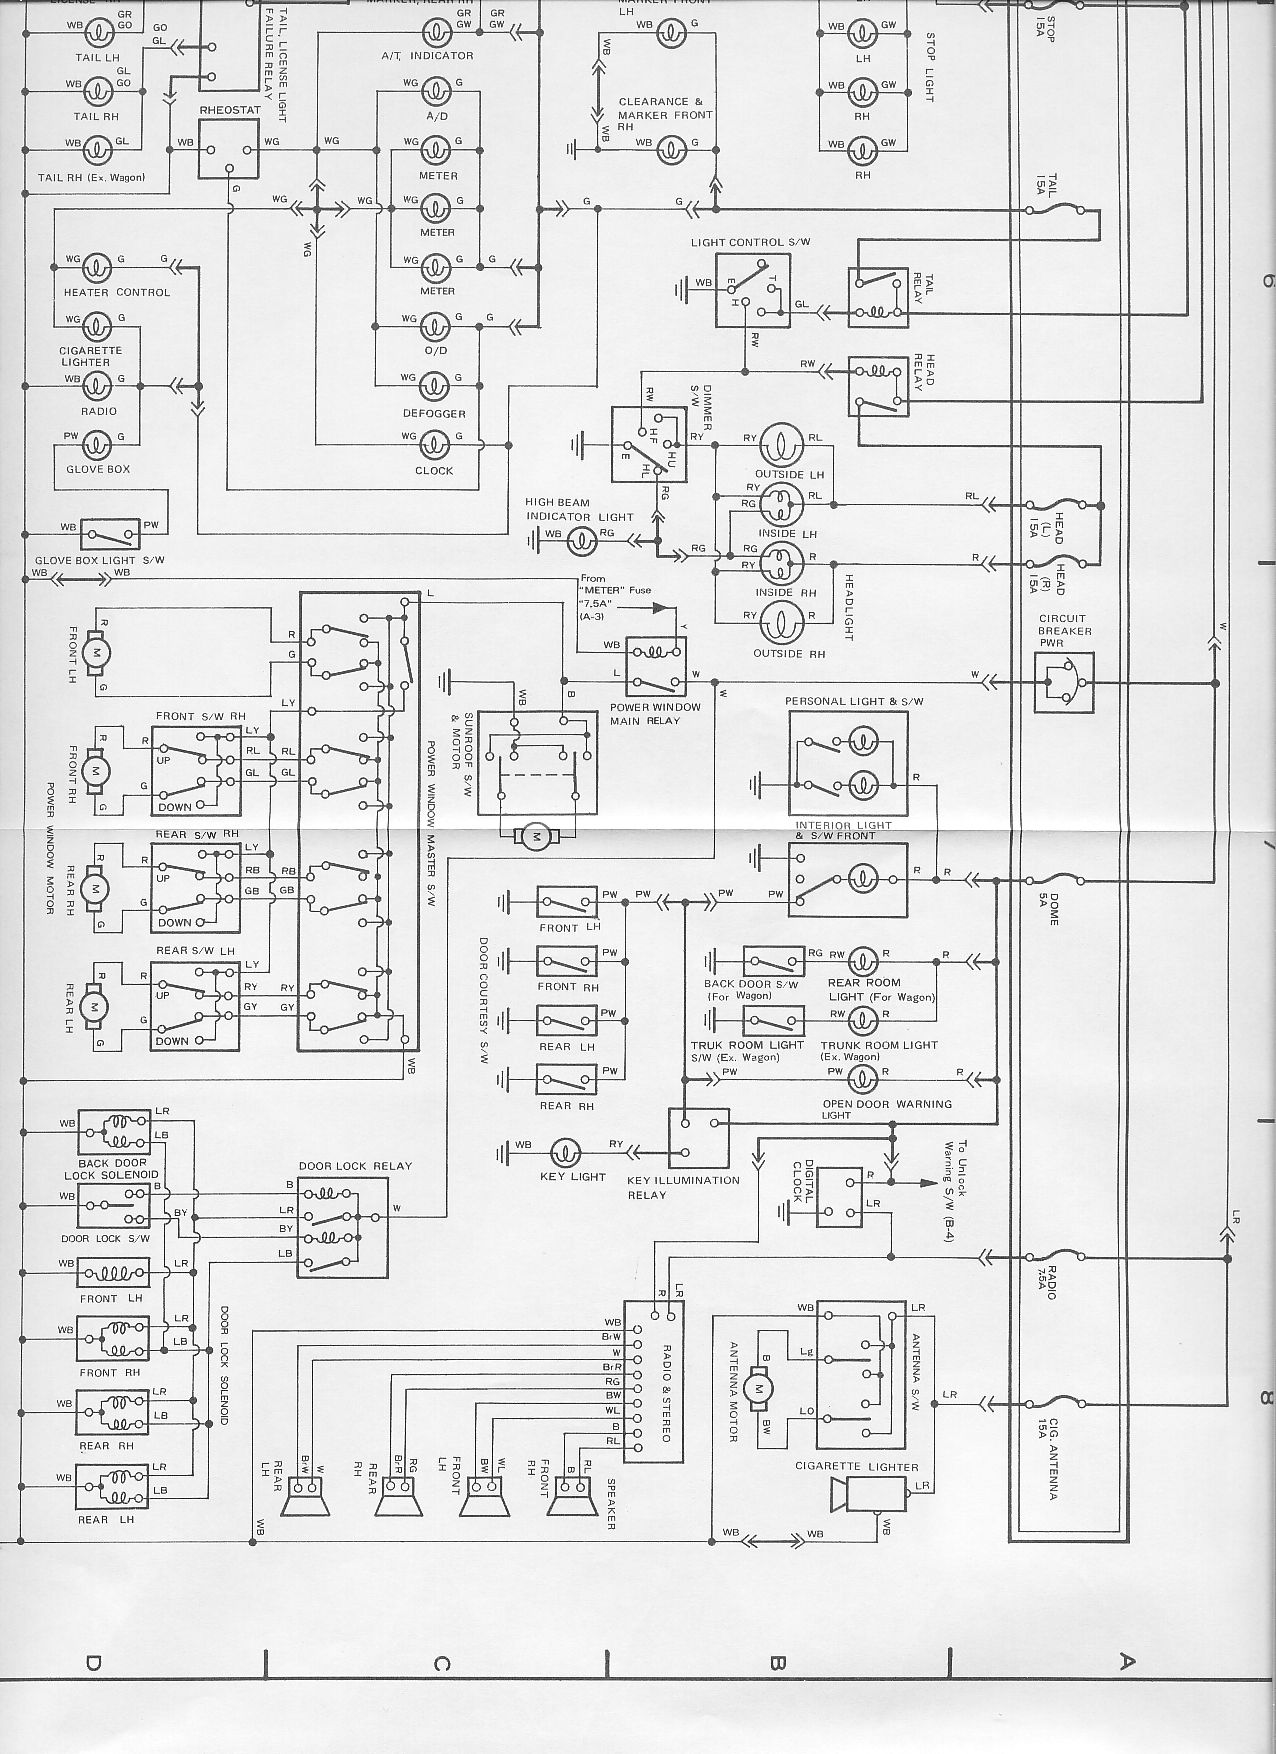 89 camry fuse box wiring diagram database